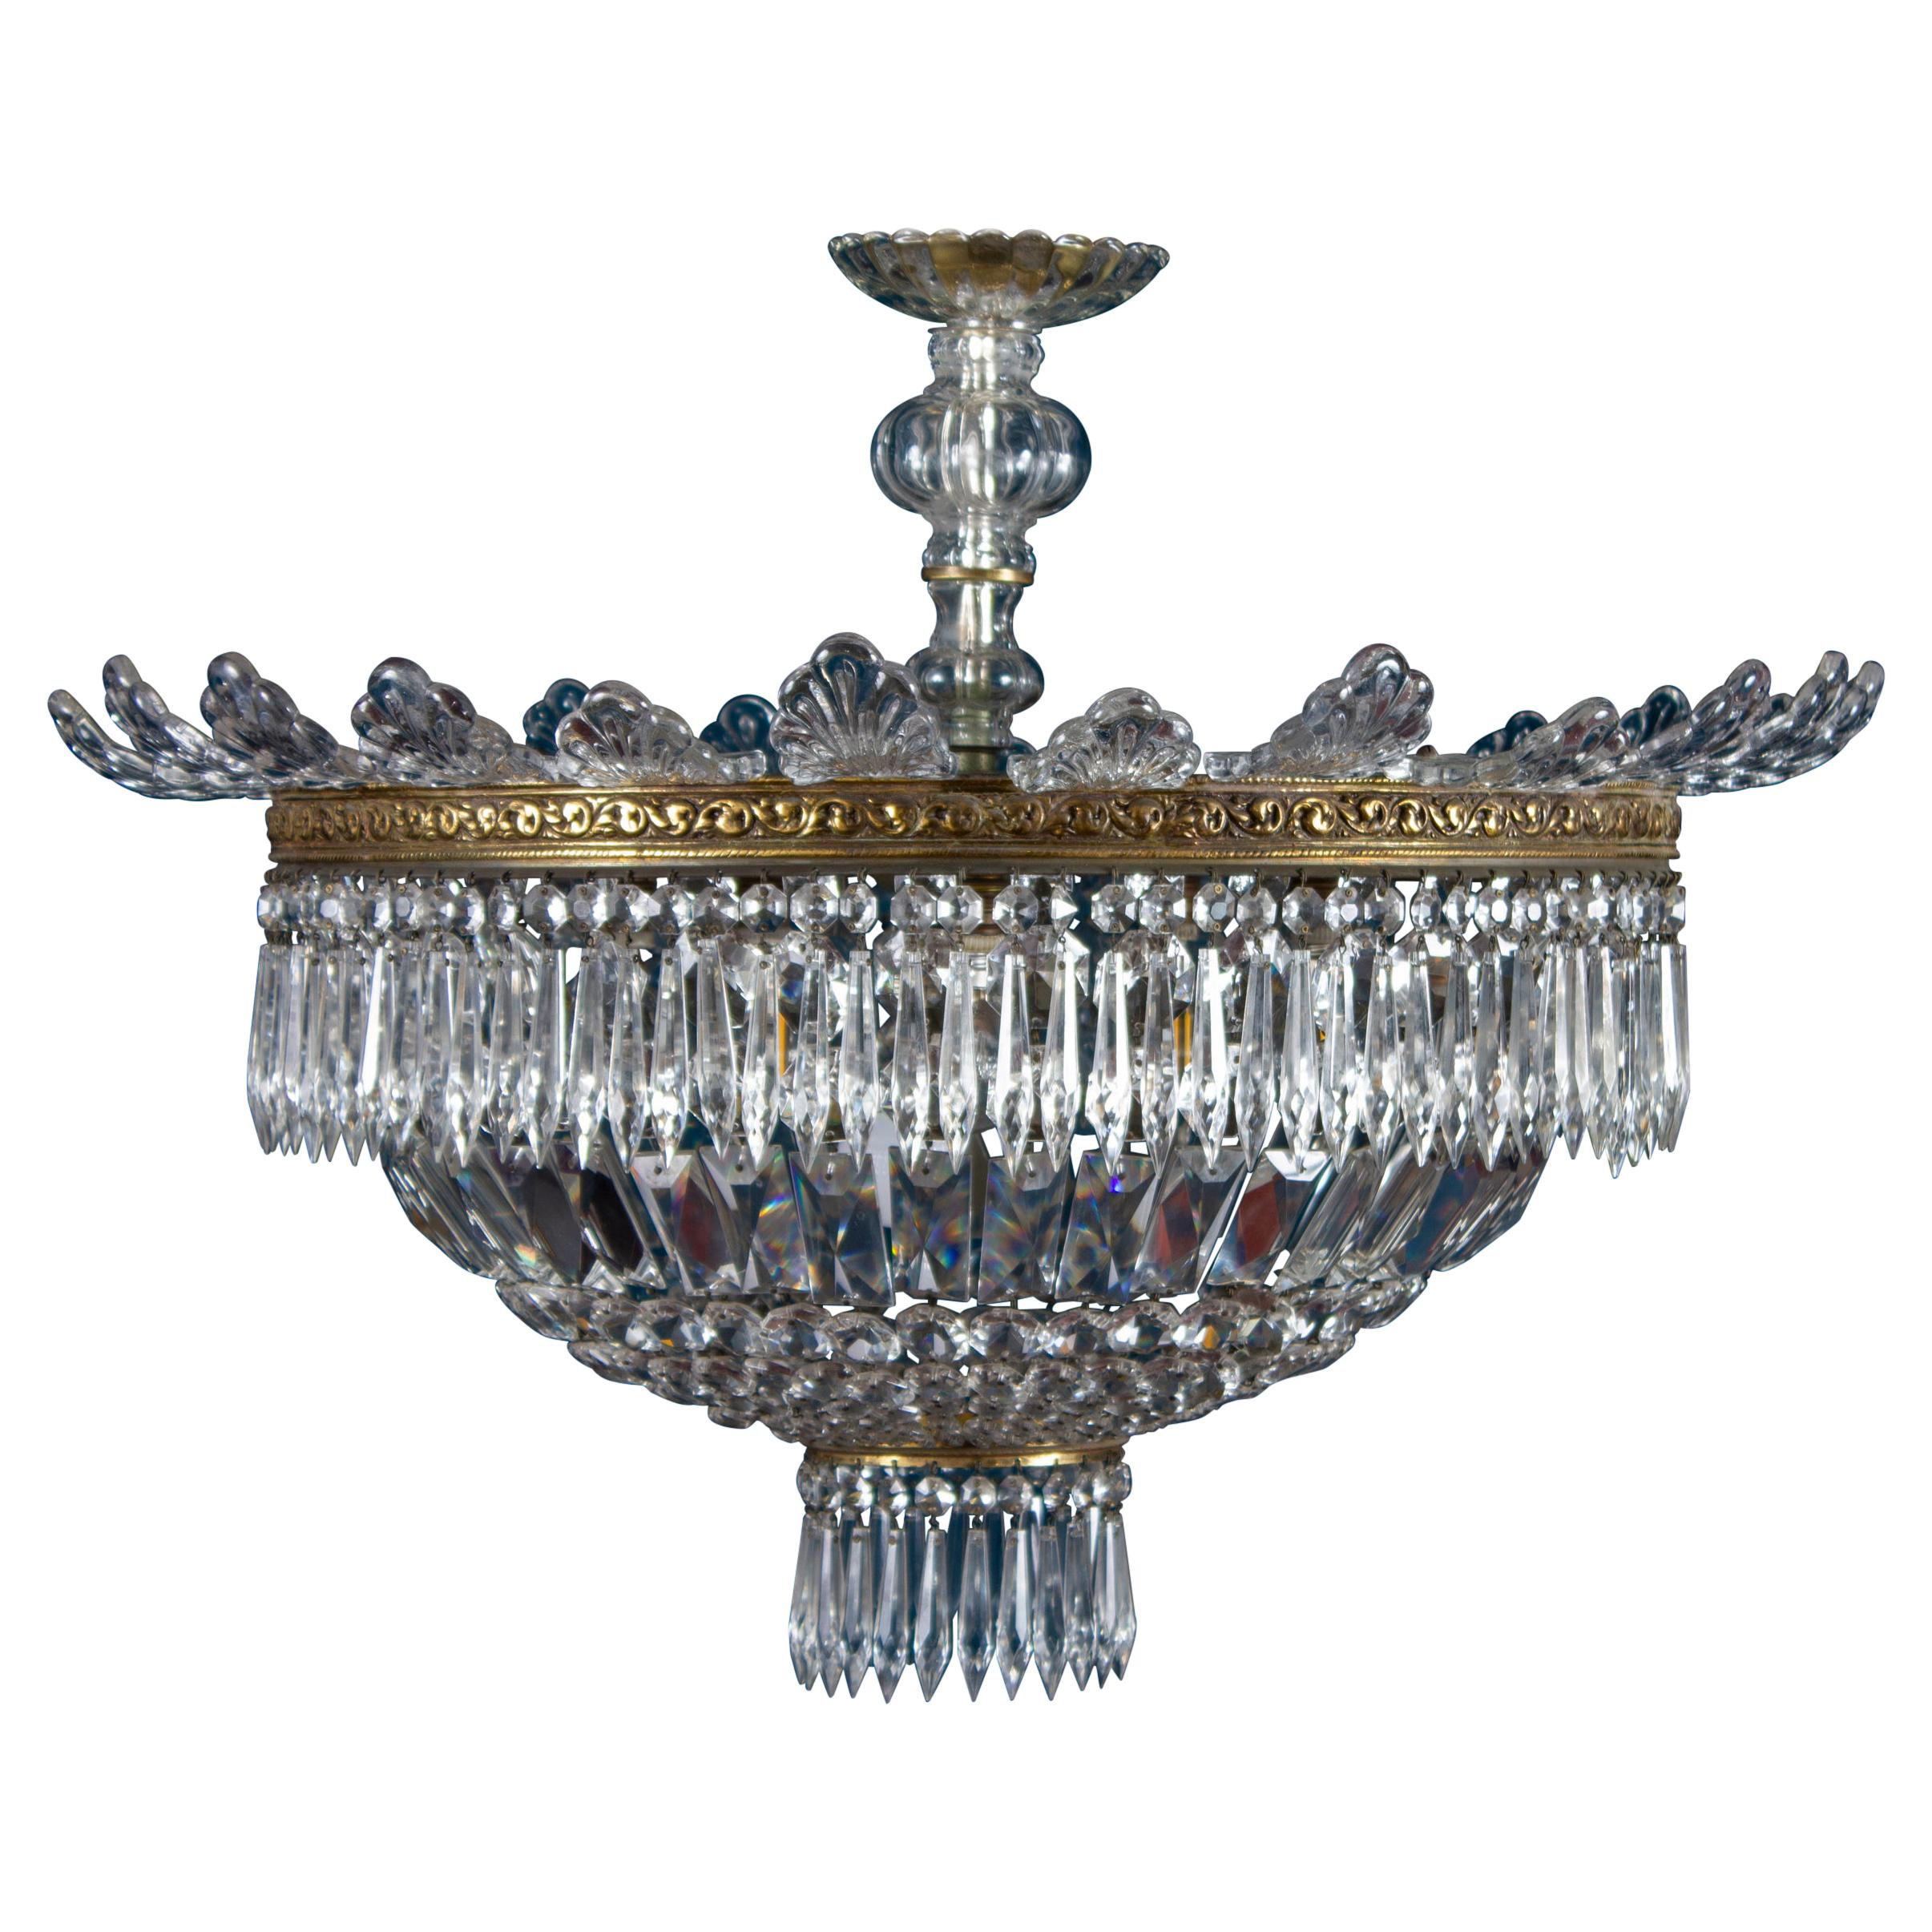 Luxurious Crystal and Brass Chandelier Italy, 1940